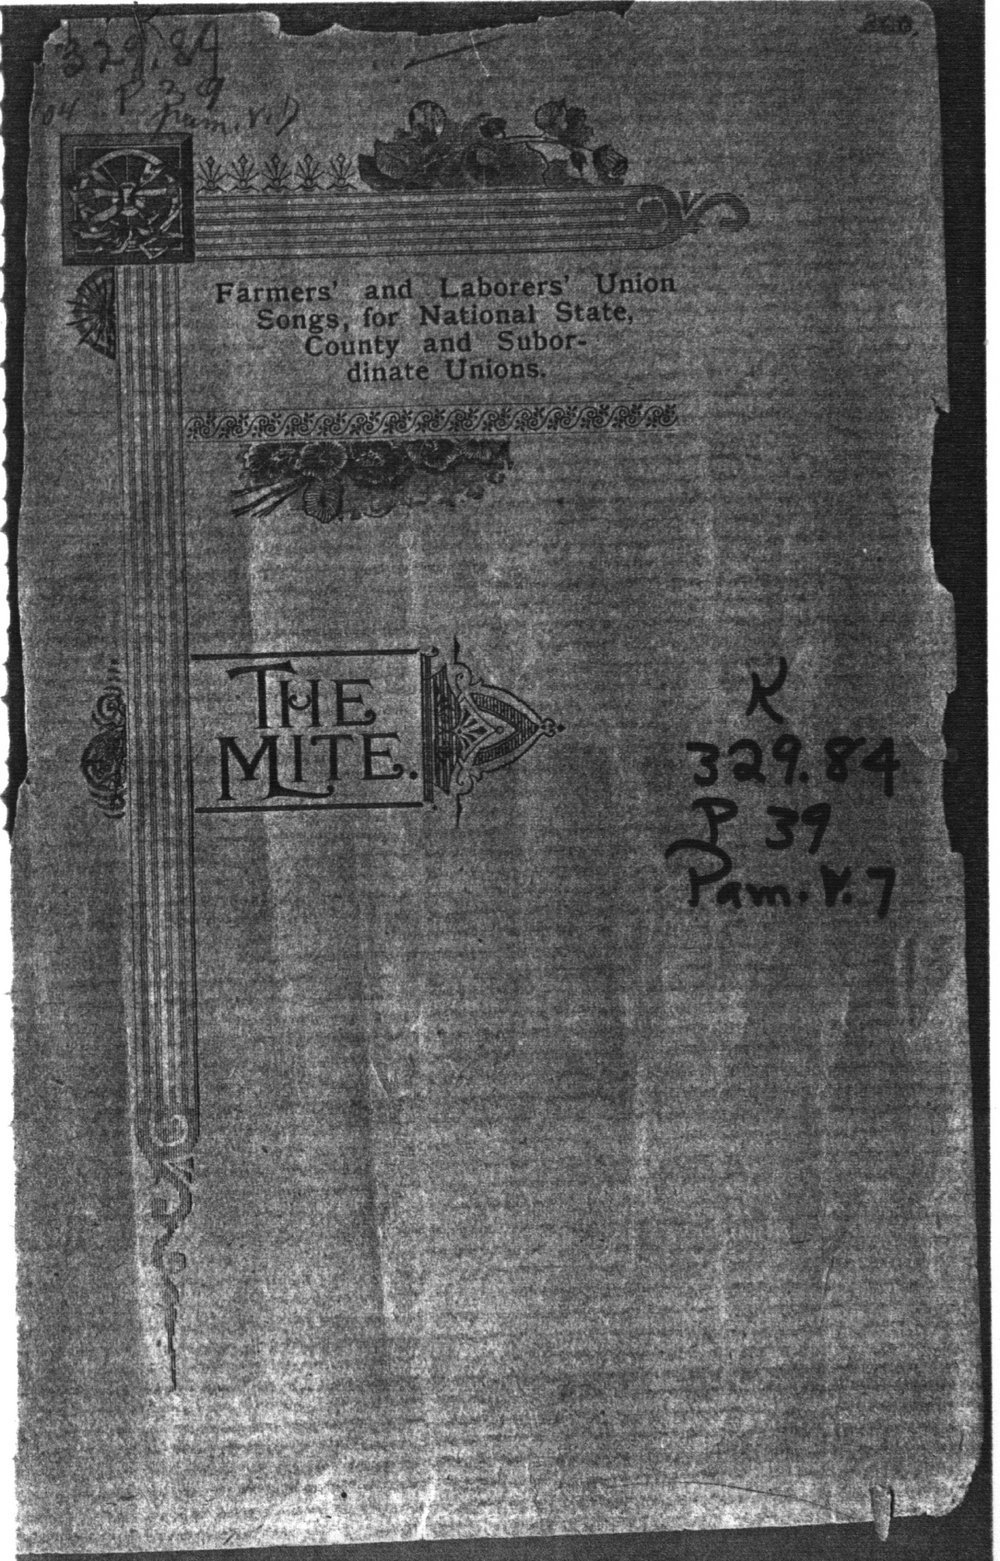 The mite:  Farmers' and Laborers' Union songs for national, state, county and subordinate unions - Front Cover